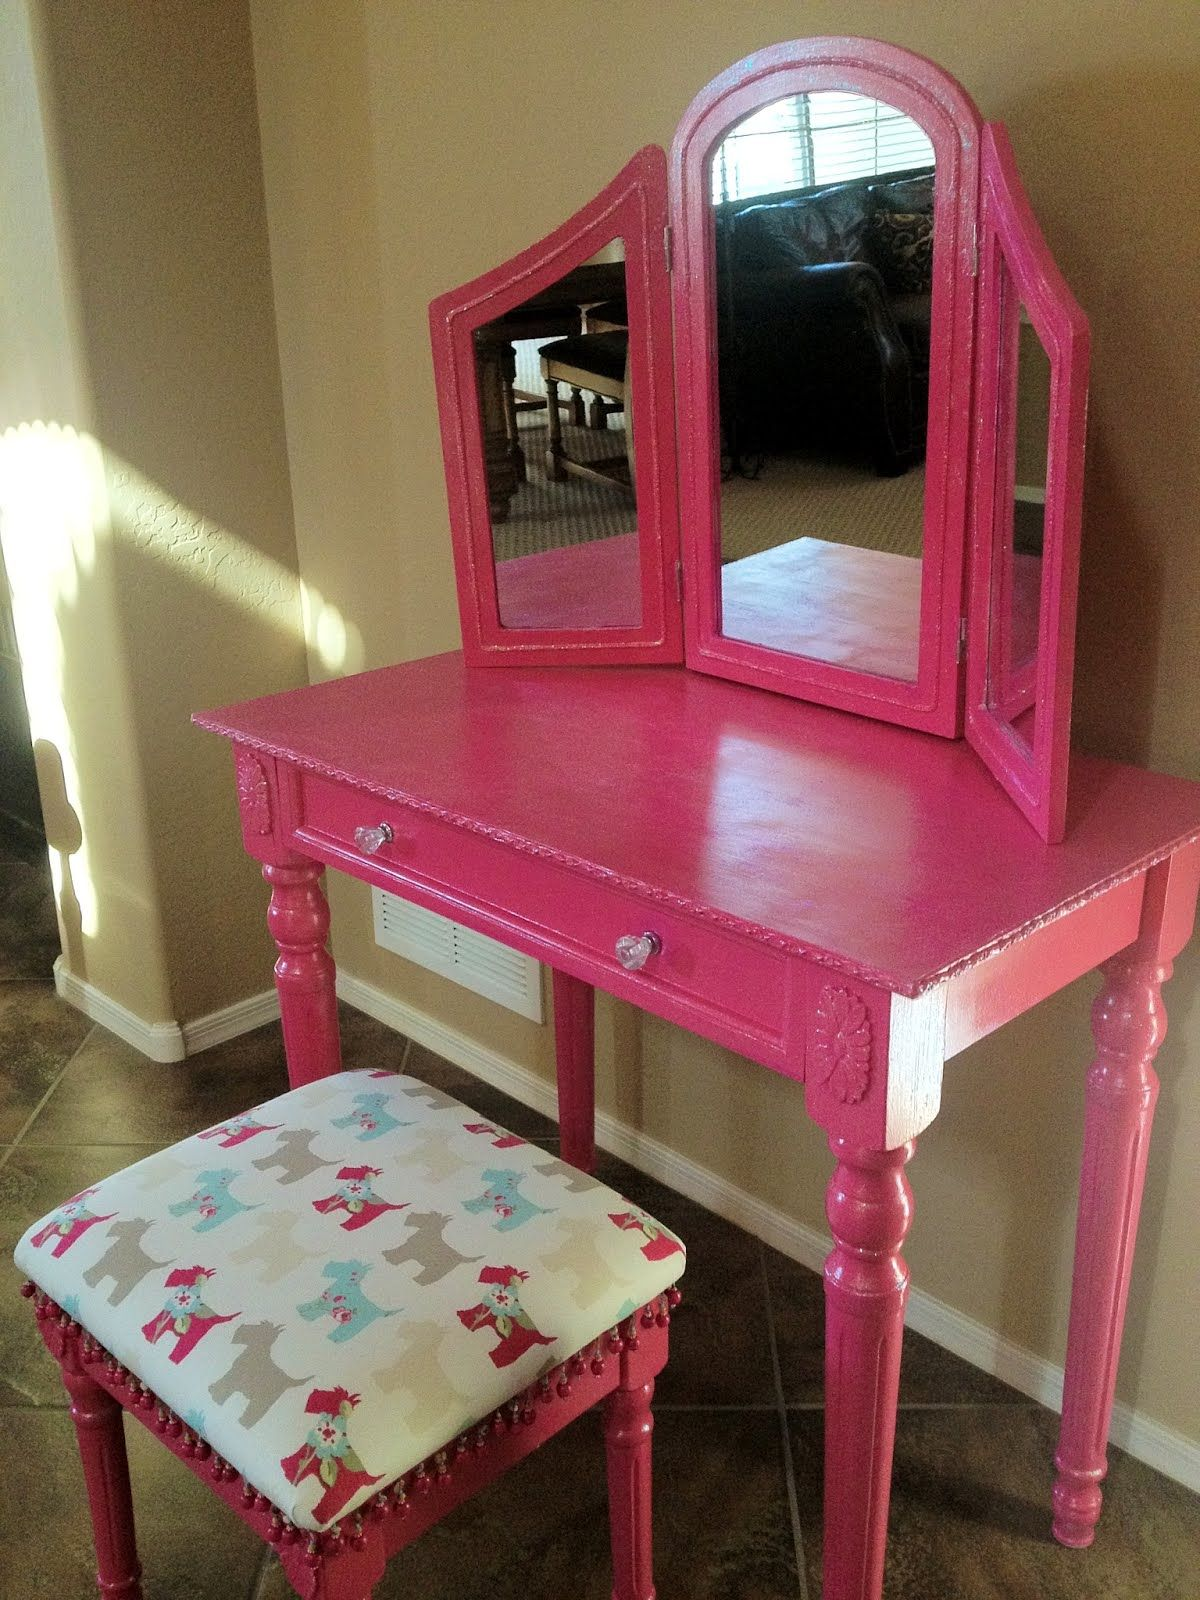 Child size unfinished wood vanity table great starter for child size unfinished wood vanity table great starter for mackenzie will paint to match her room for the home pinterest wood vanity vanity tables geotapseo Choice Image